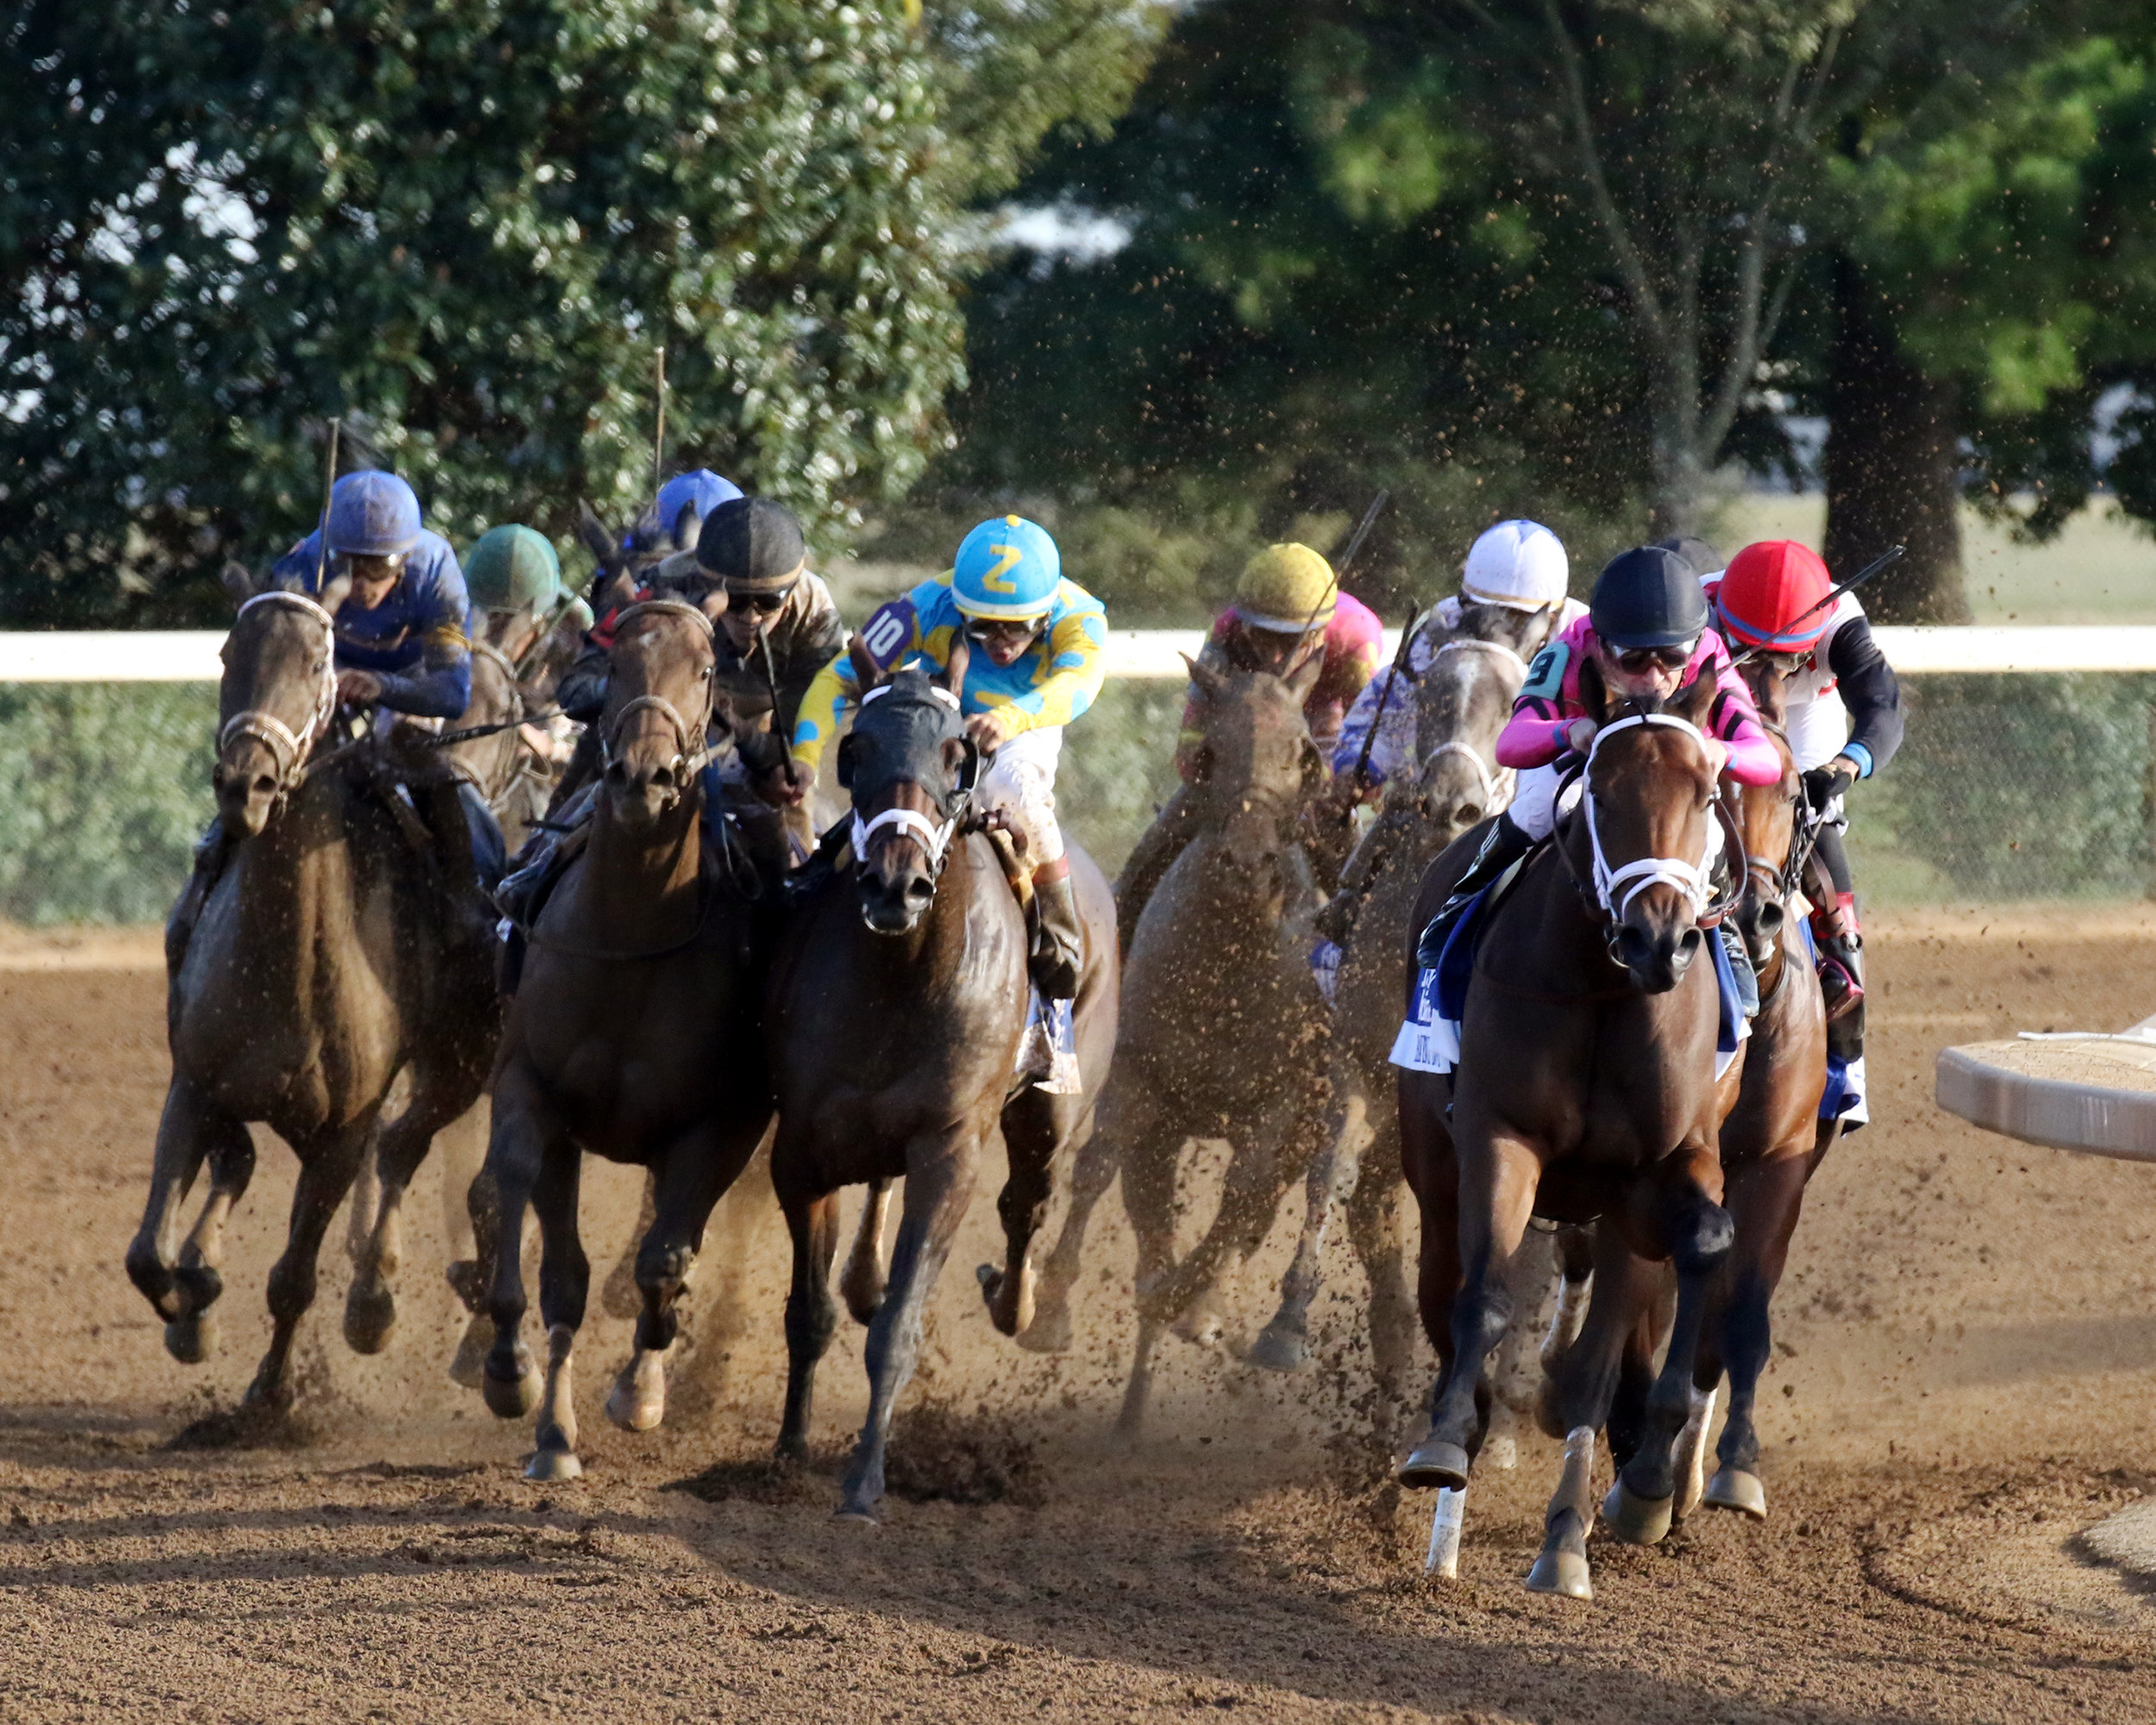 Keeneland's Fall Race Meet opened on Oct. 6 and runs through Oct. 28. The meeting includes many big races, including the Grade 1 Darley Alcibiades Stakes, won by Heavenly Love (far right). (Keeneland Photo)